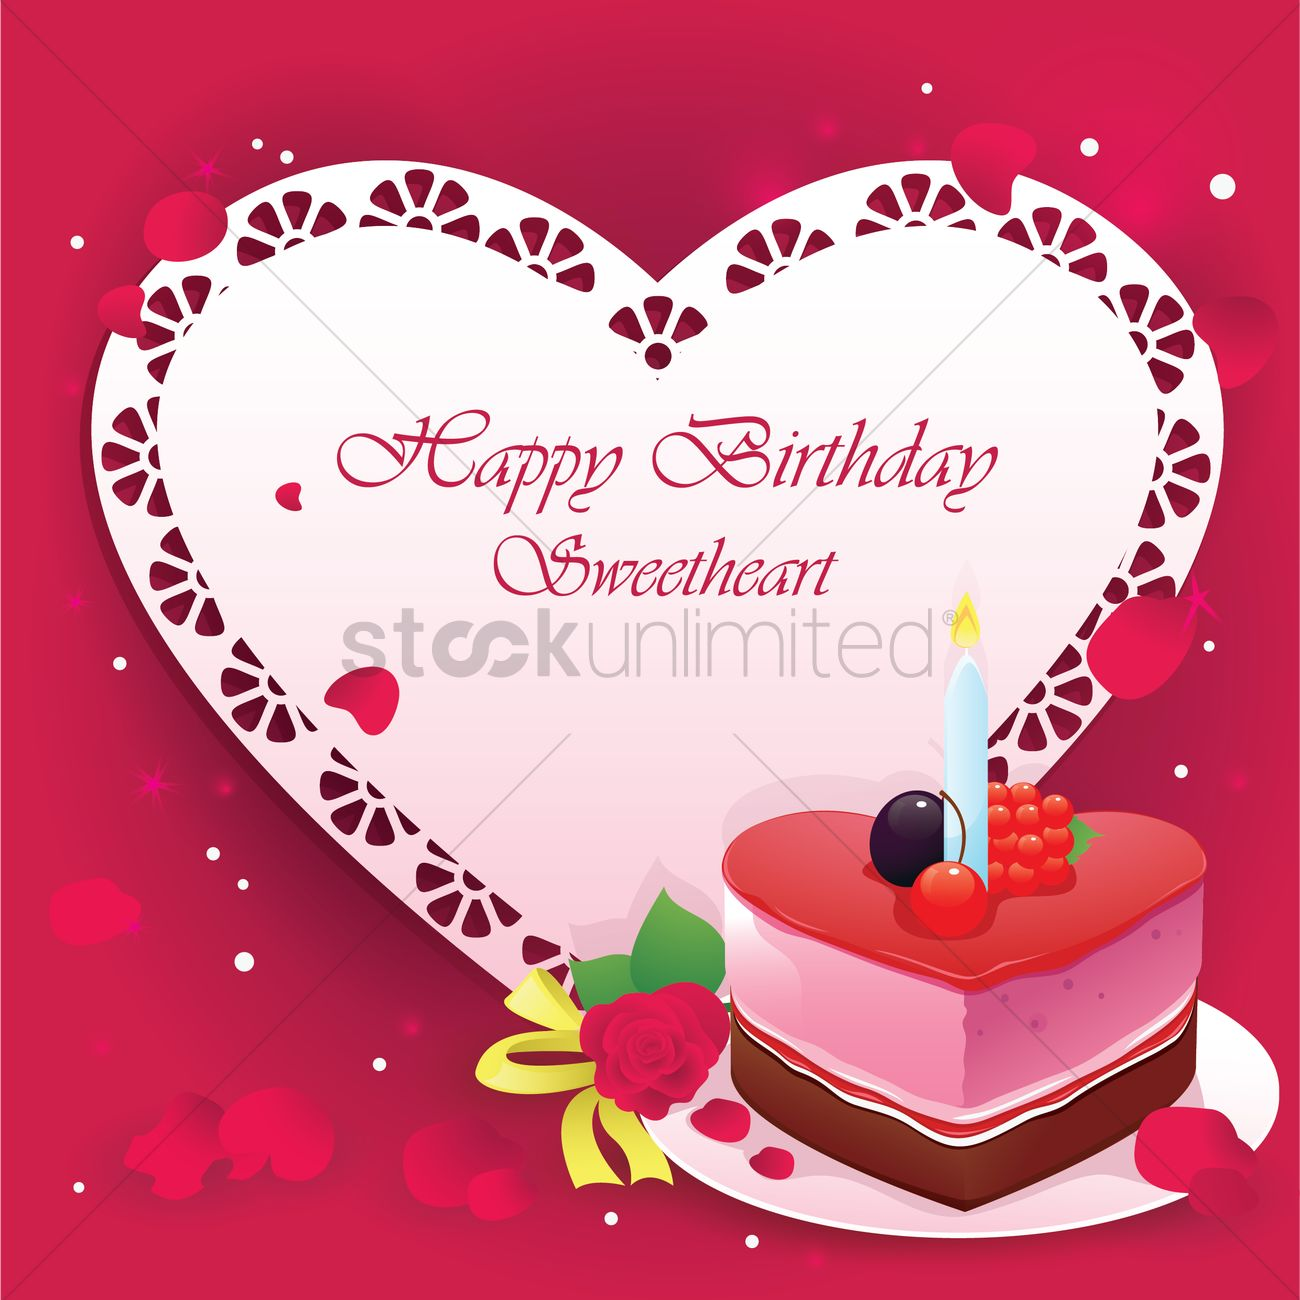 Happy Birthday Sweetheart Vector Image 1246057 Stockunlimited